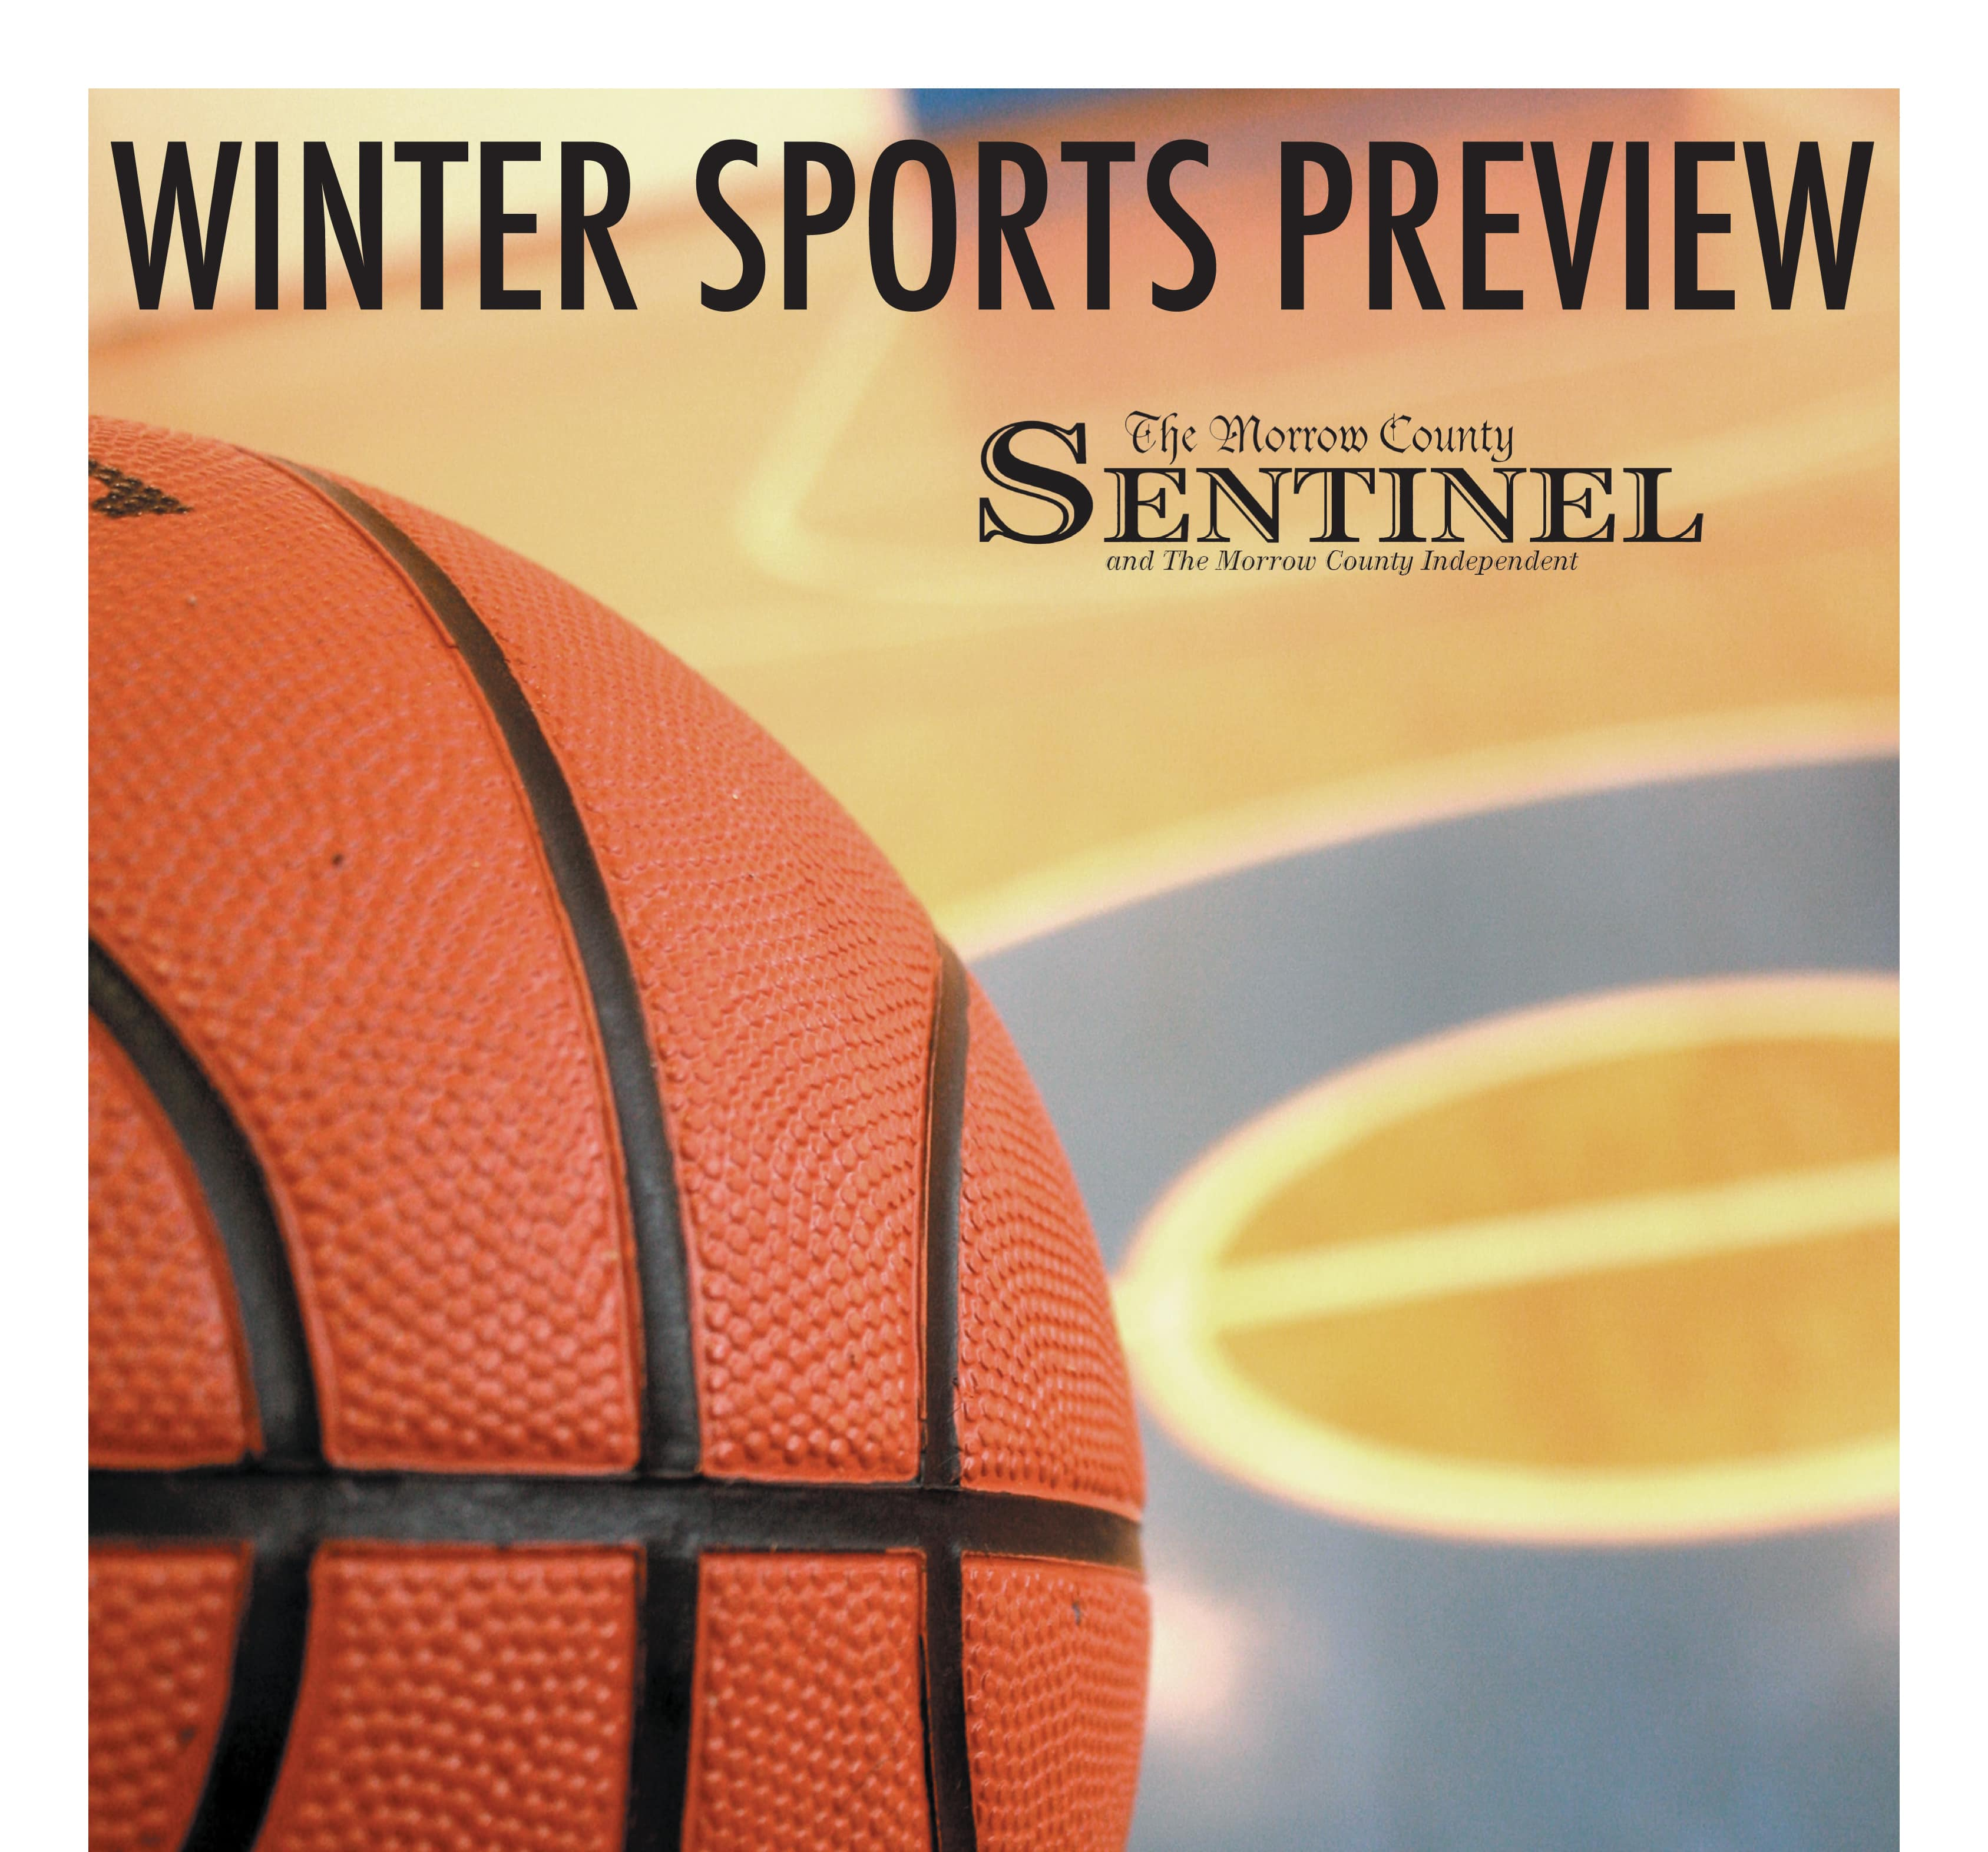 Winter Sports Preview